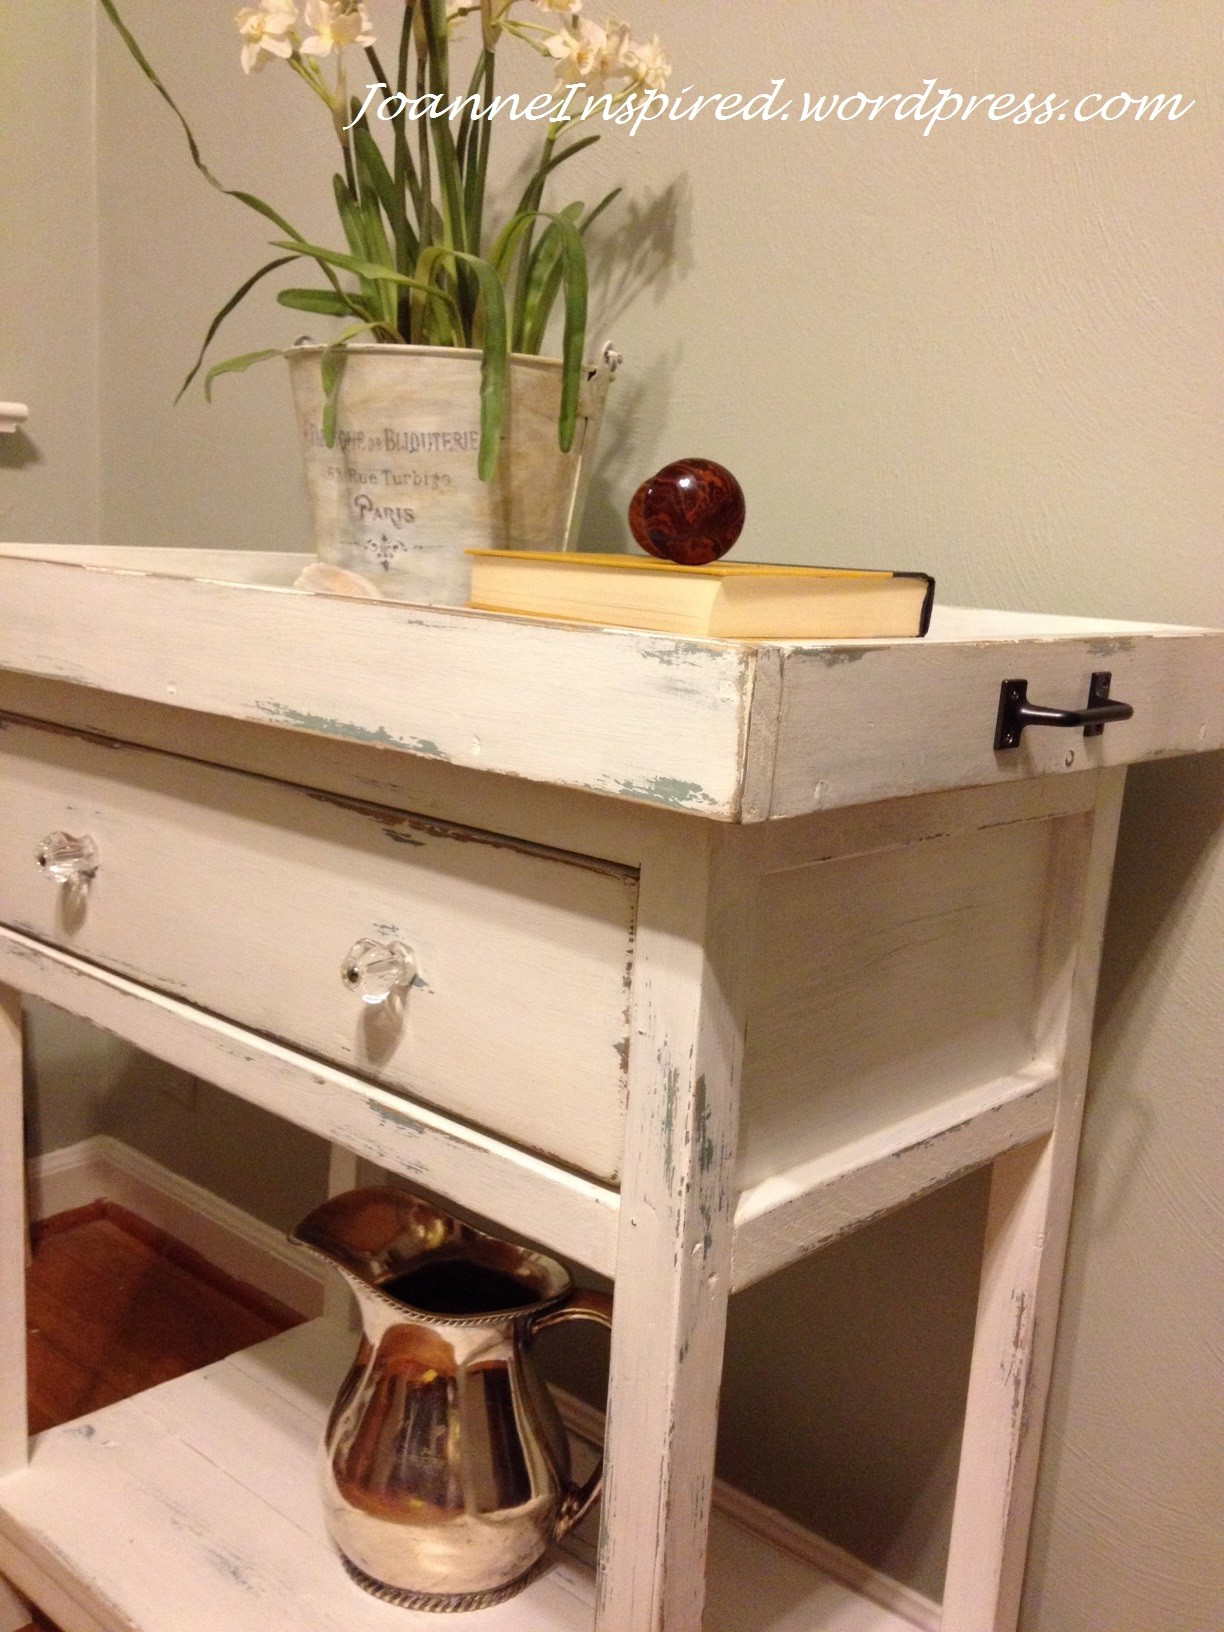 Diy Bedside Table Diy Farmhouse Bedside Table Done Joanne Inspired